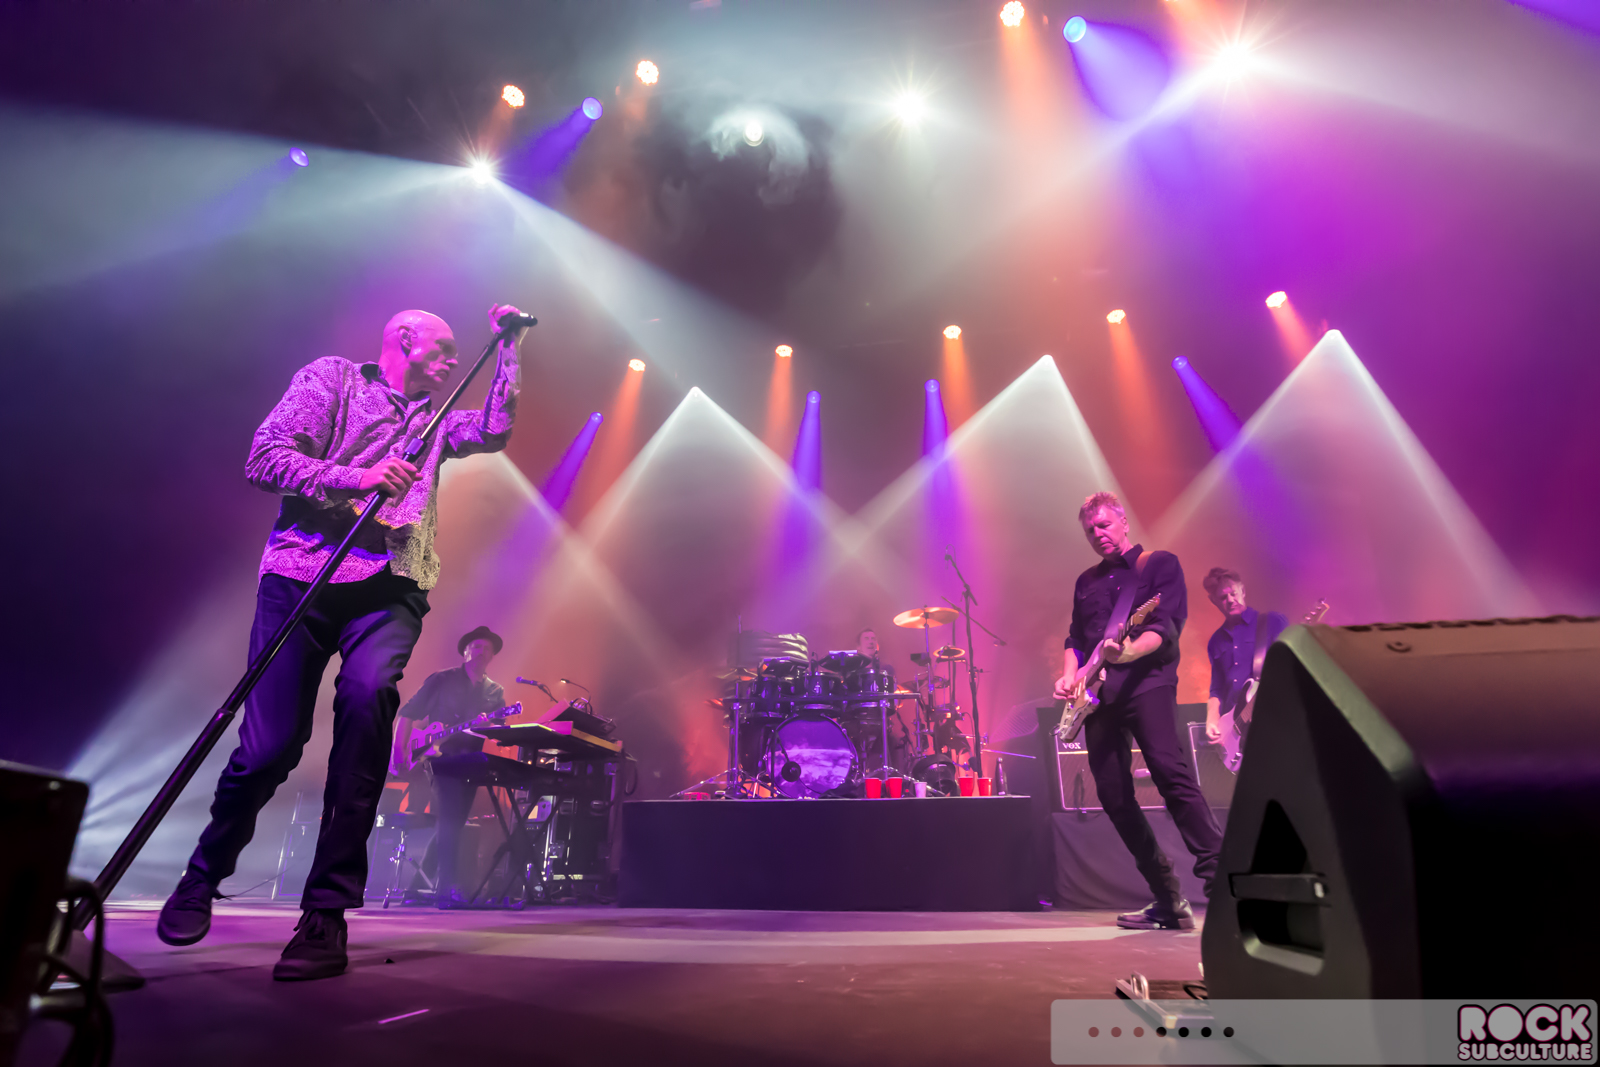 Concert photography - dealing with stage lighting ... |Live Concert Photography